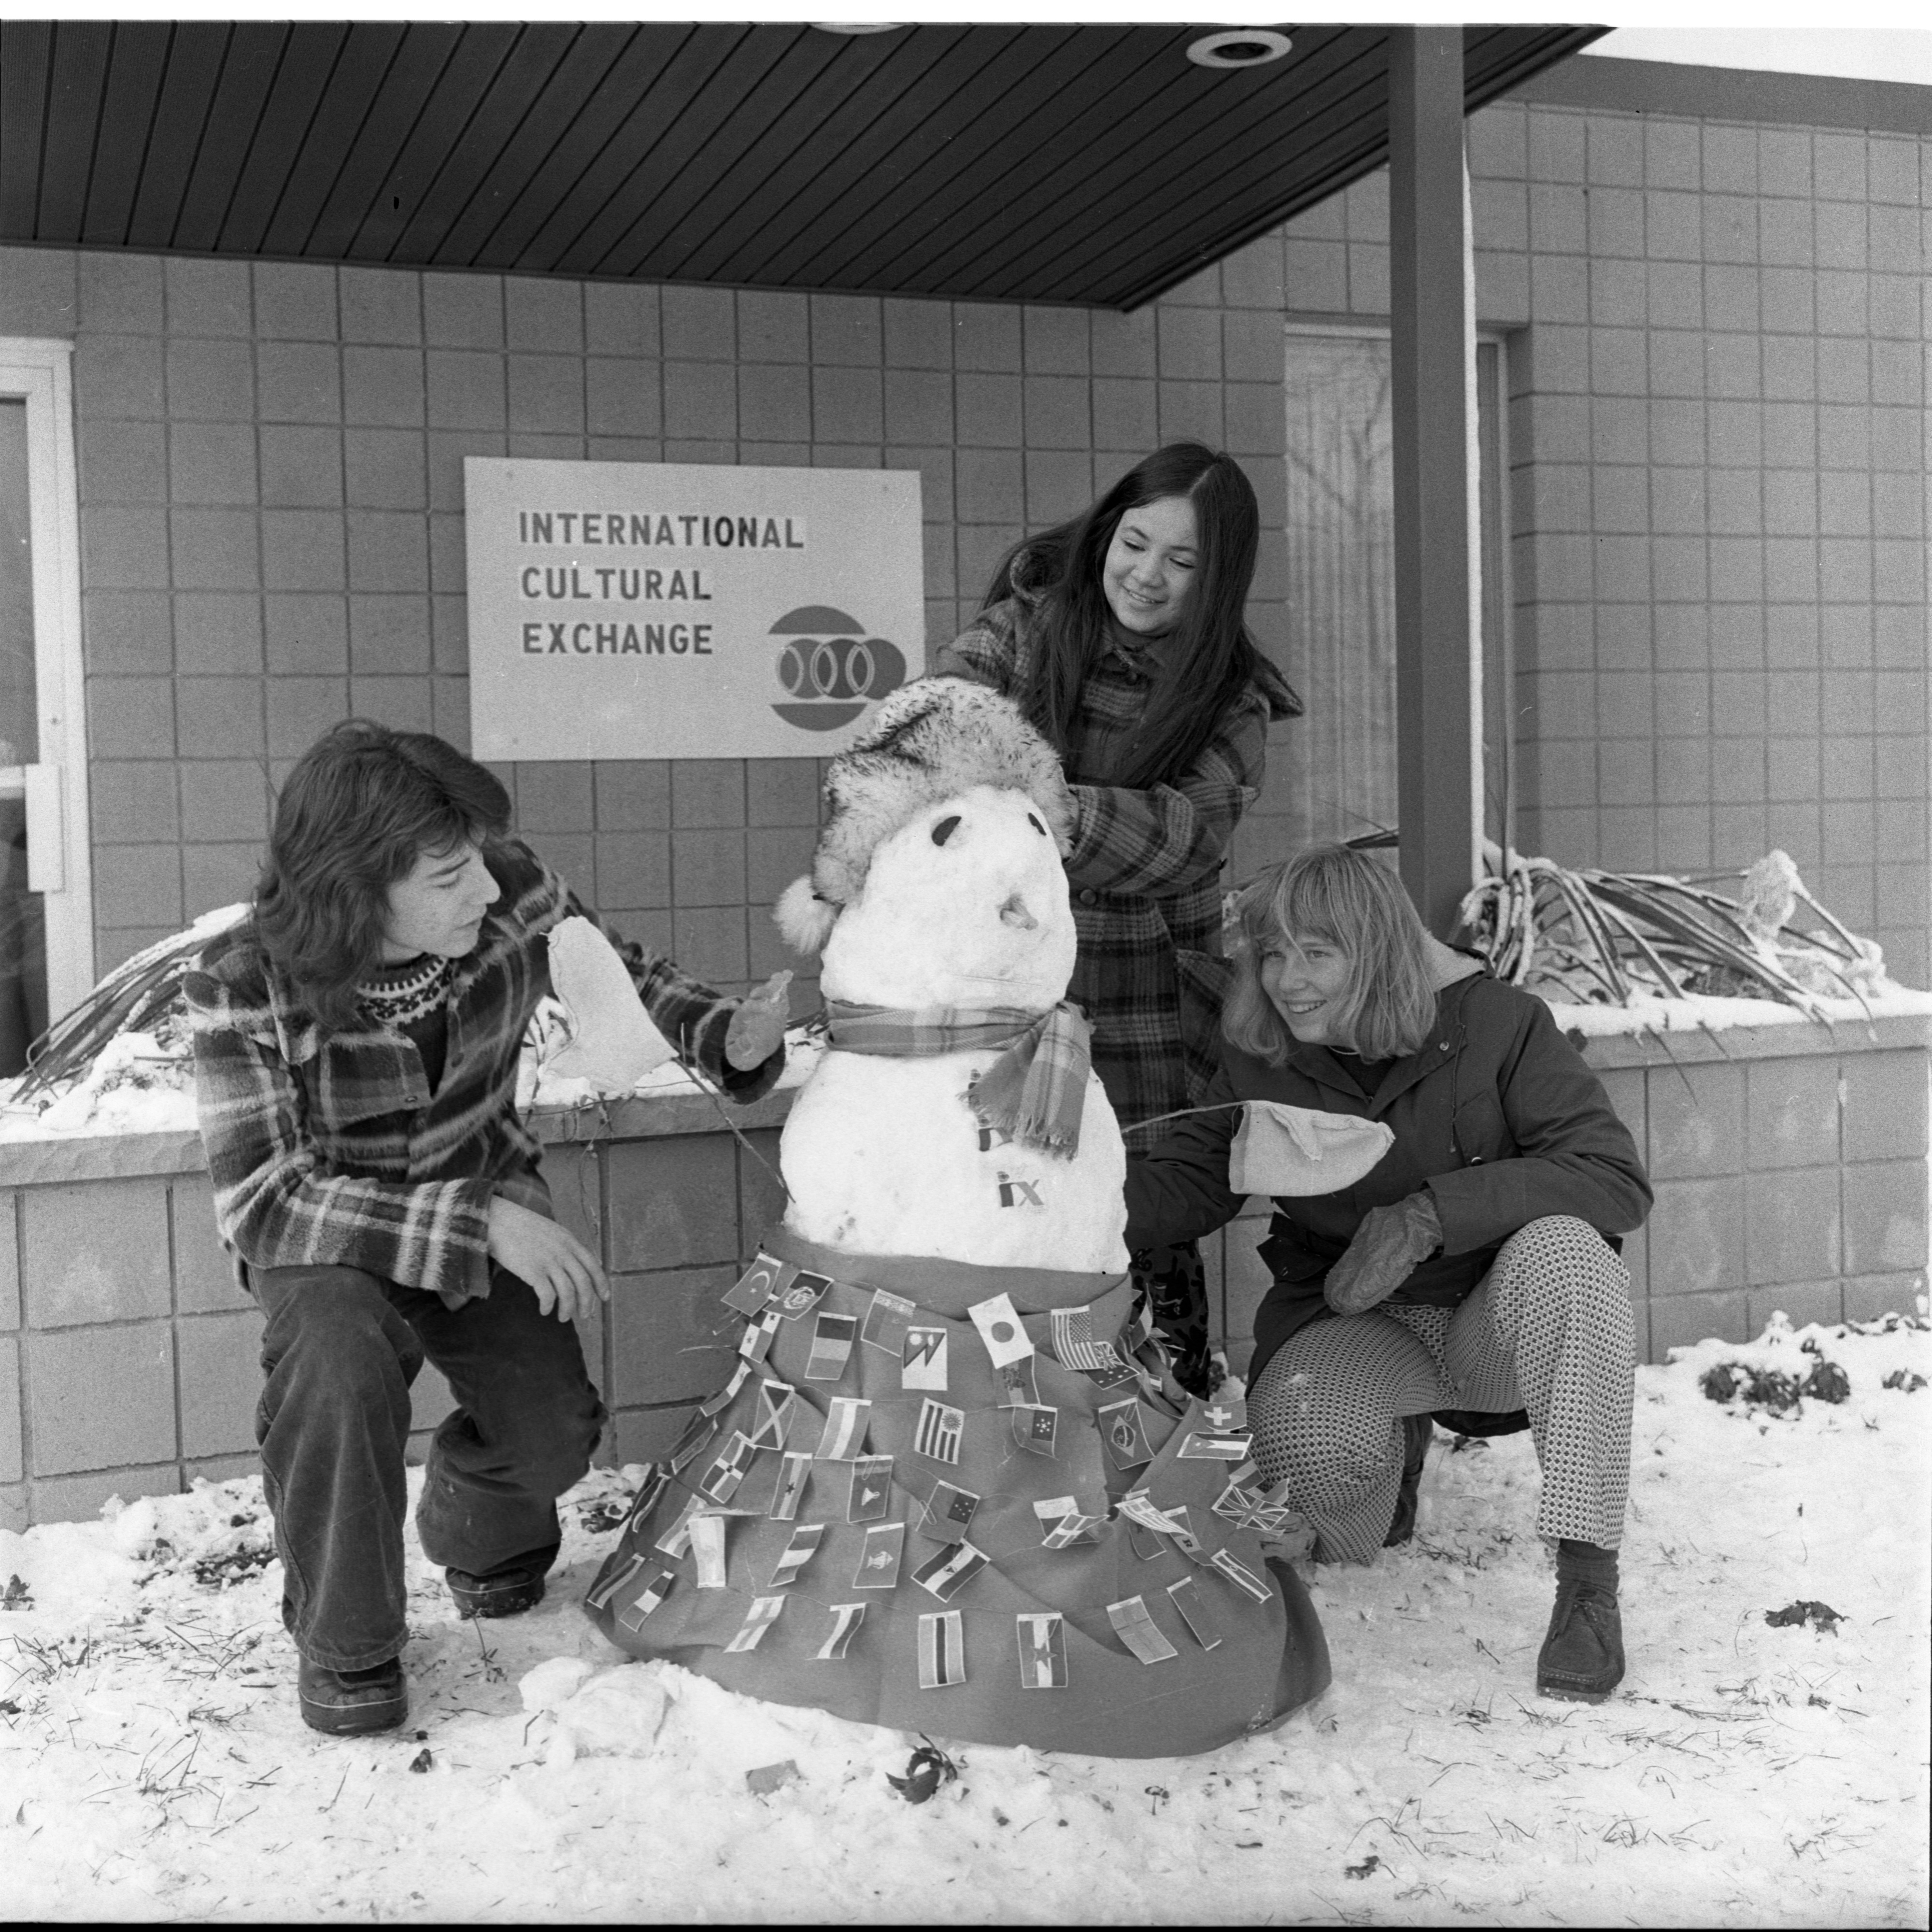 Students Build A Snow Woman In Front Of The International Cultural Exchange Building, December 19, 1973 image